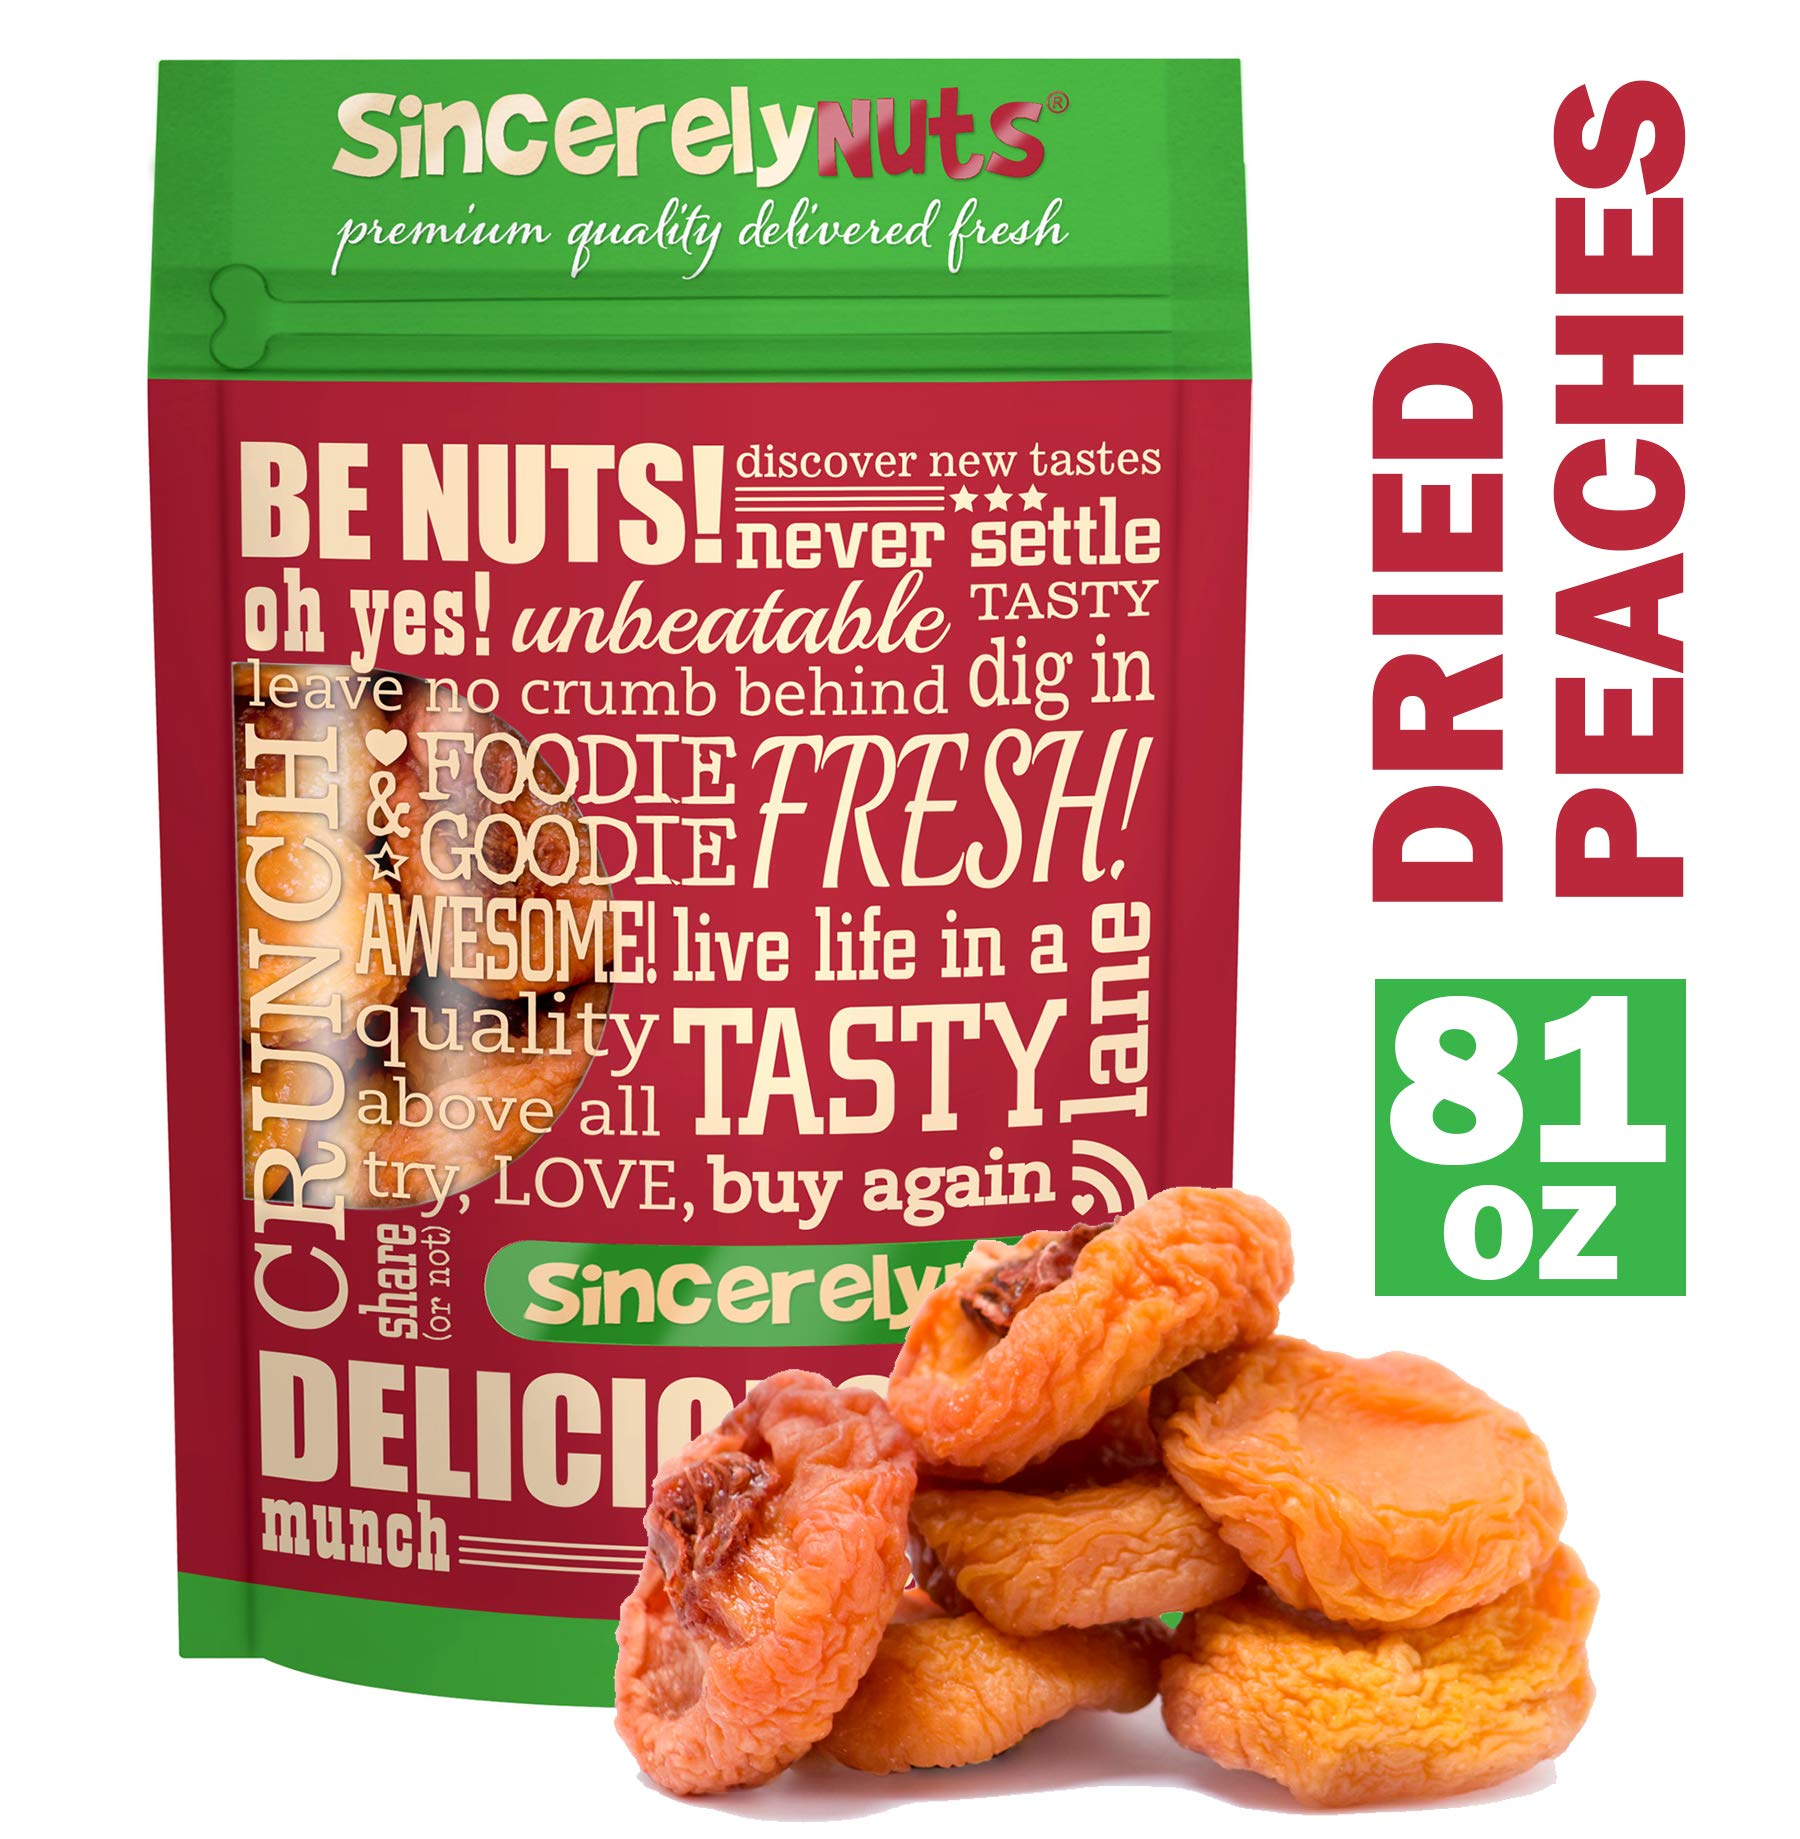 Sincerely Nuts Dried Peaches (5 LB) Vitamin C-Rich Snack - Classic Favorite for the Whole Family - Vegan & Kosher by Sincerely Nuts